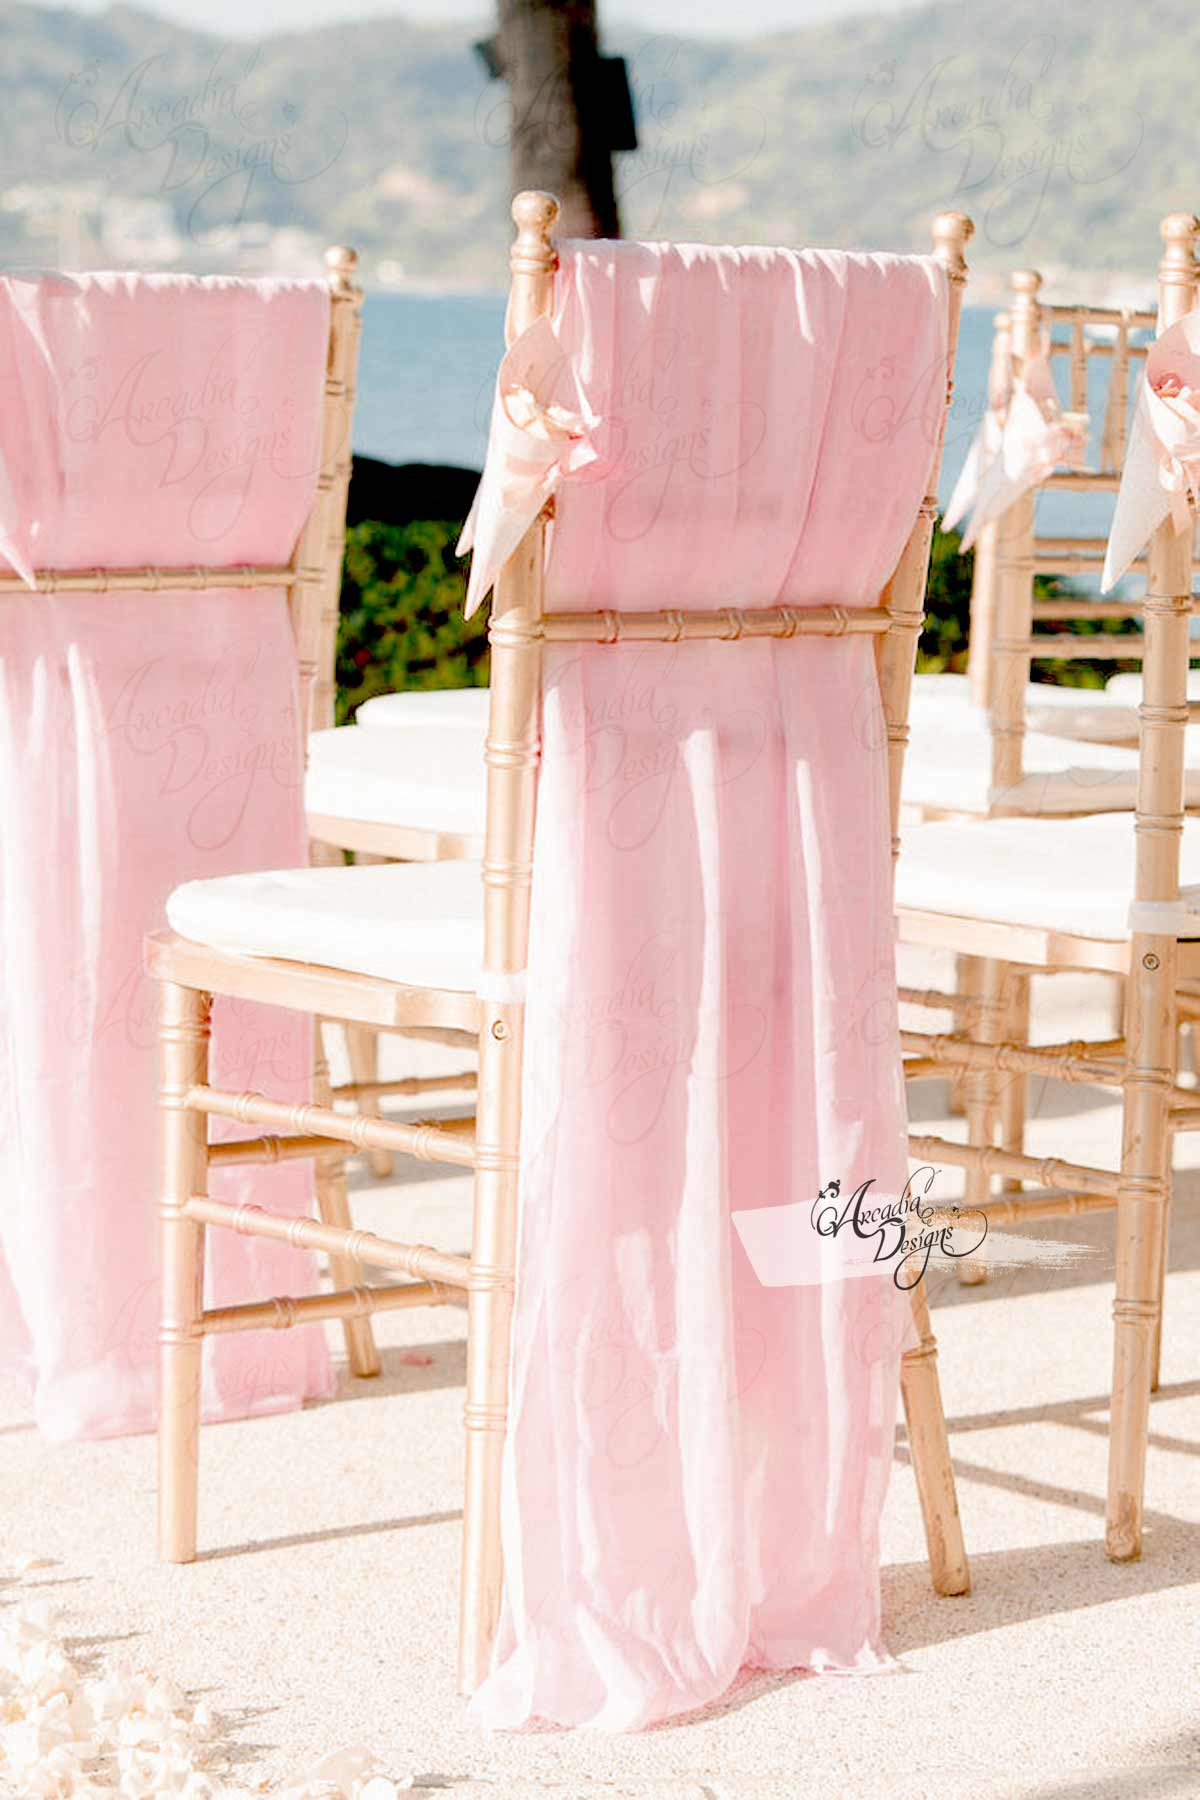 where to buy chair sashes antique wicker back chairs sheer white chiffon sash arcadia designs blush pink